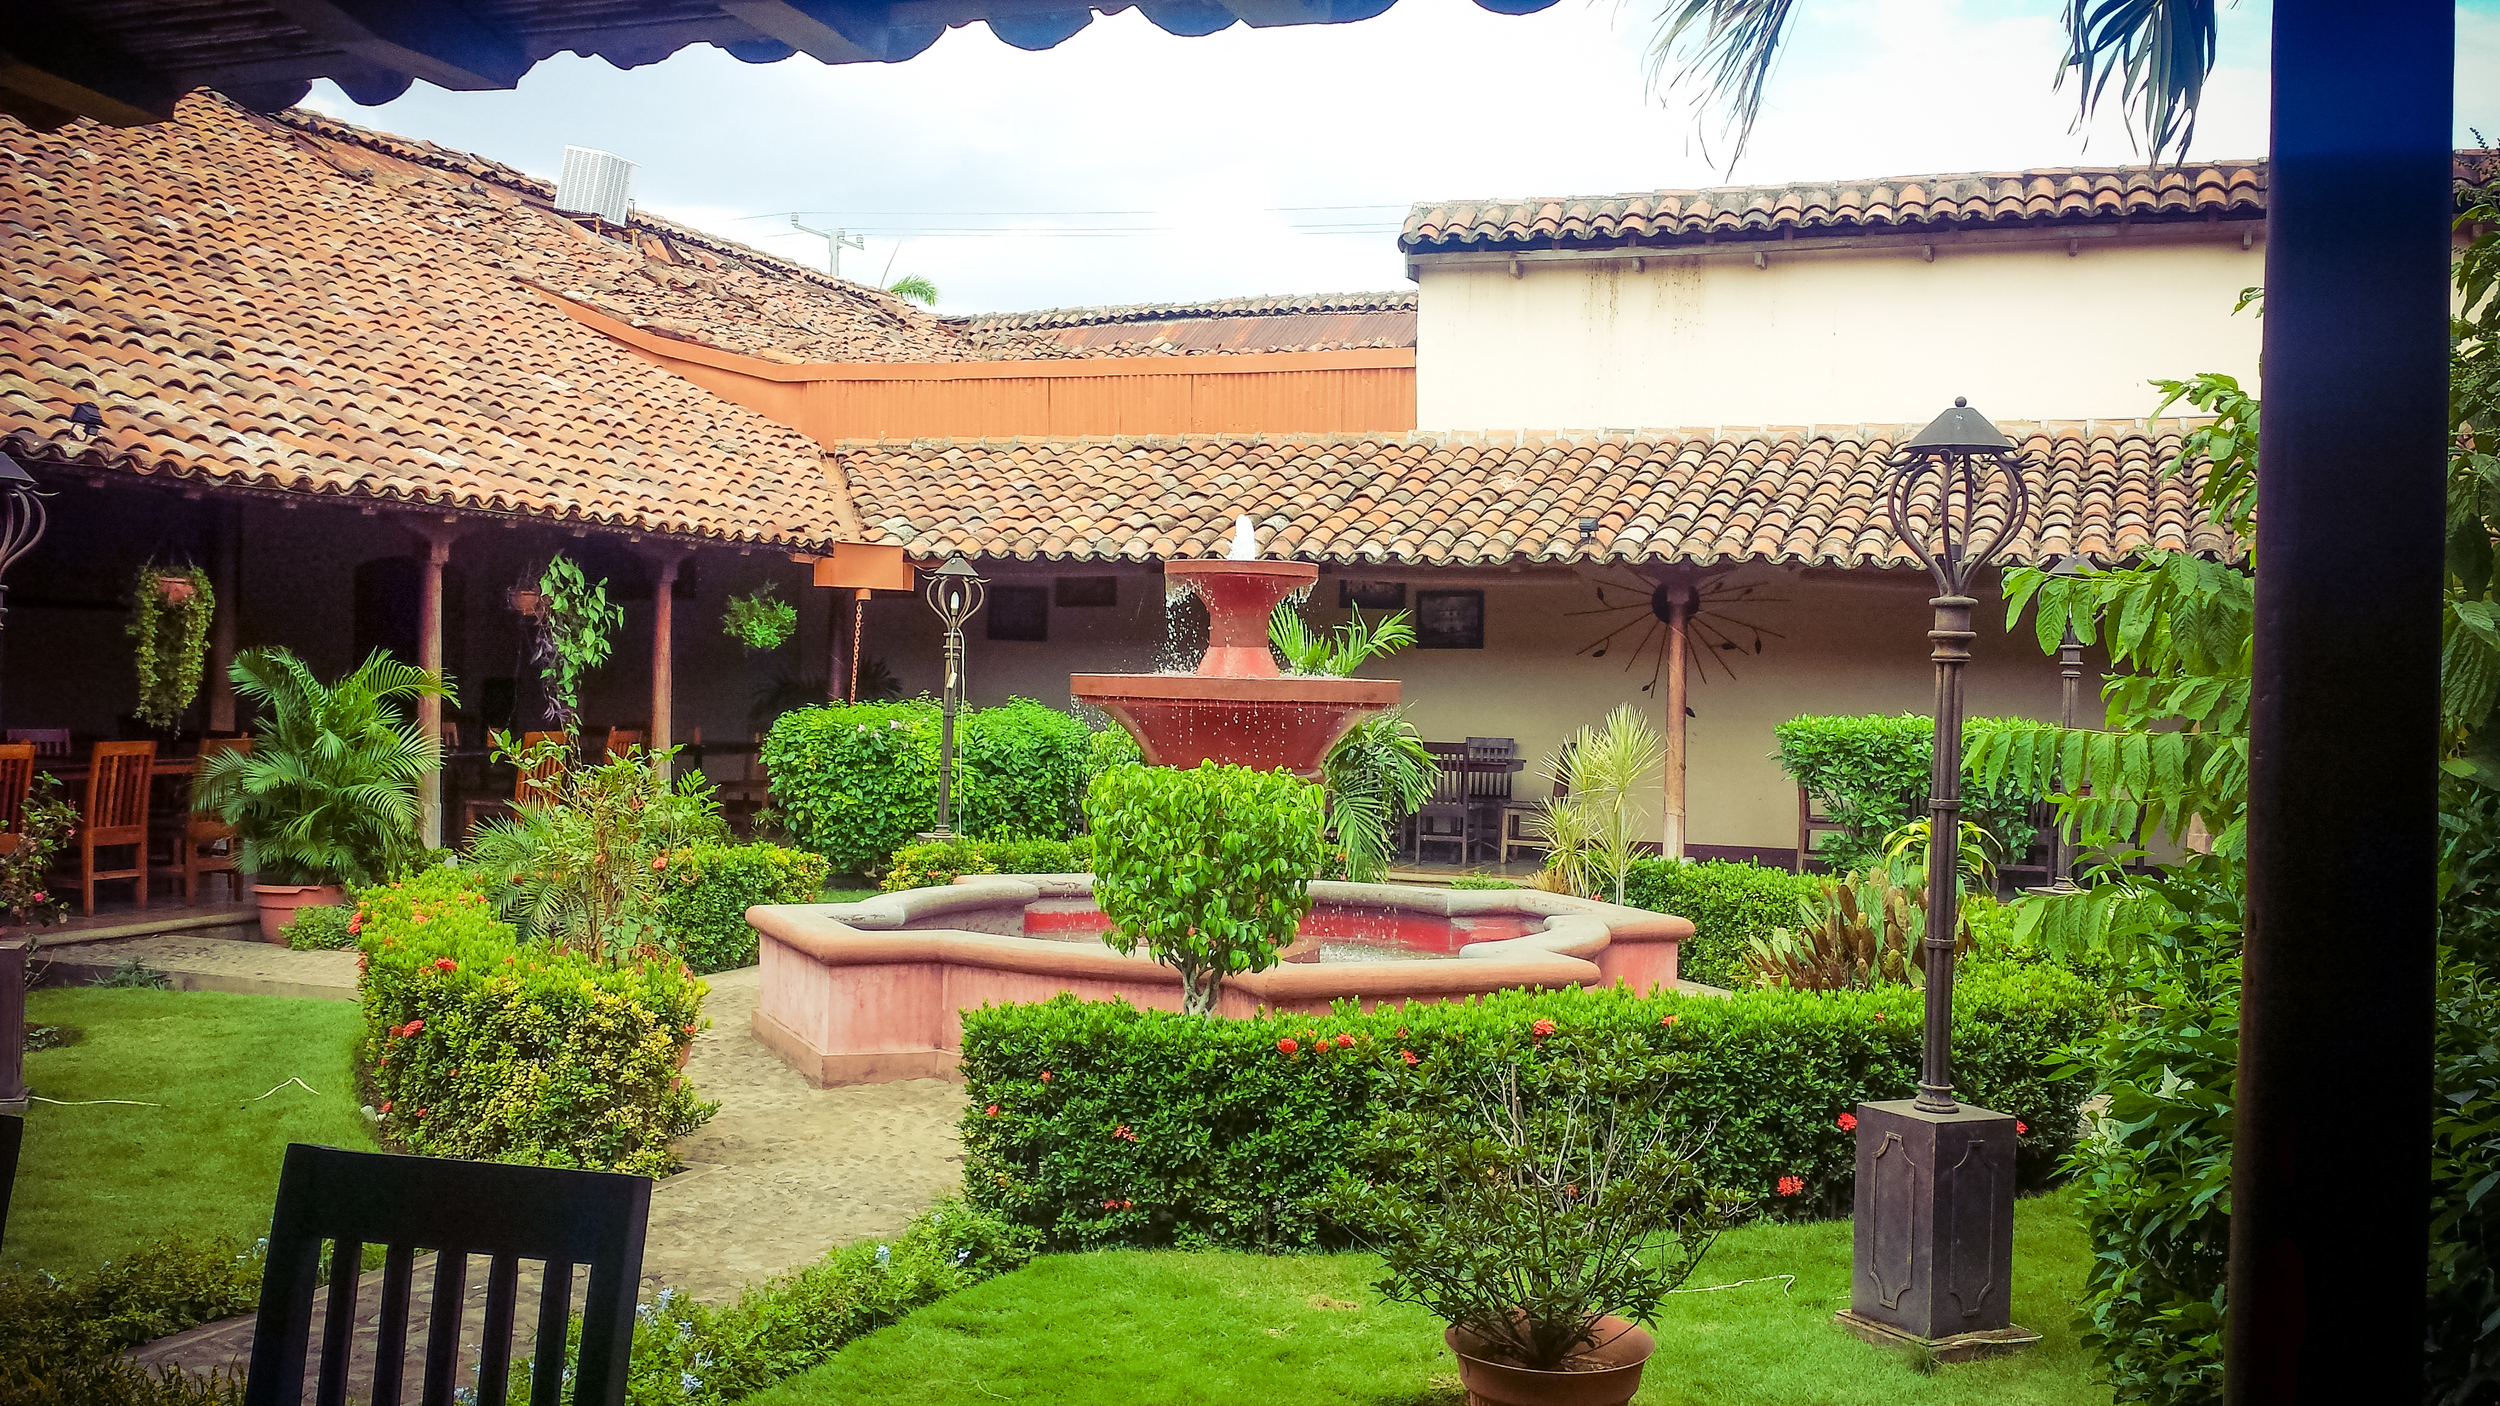 Our view while eating lunch. Courtyard at Restaurant El Carbon...the food was delicious!